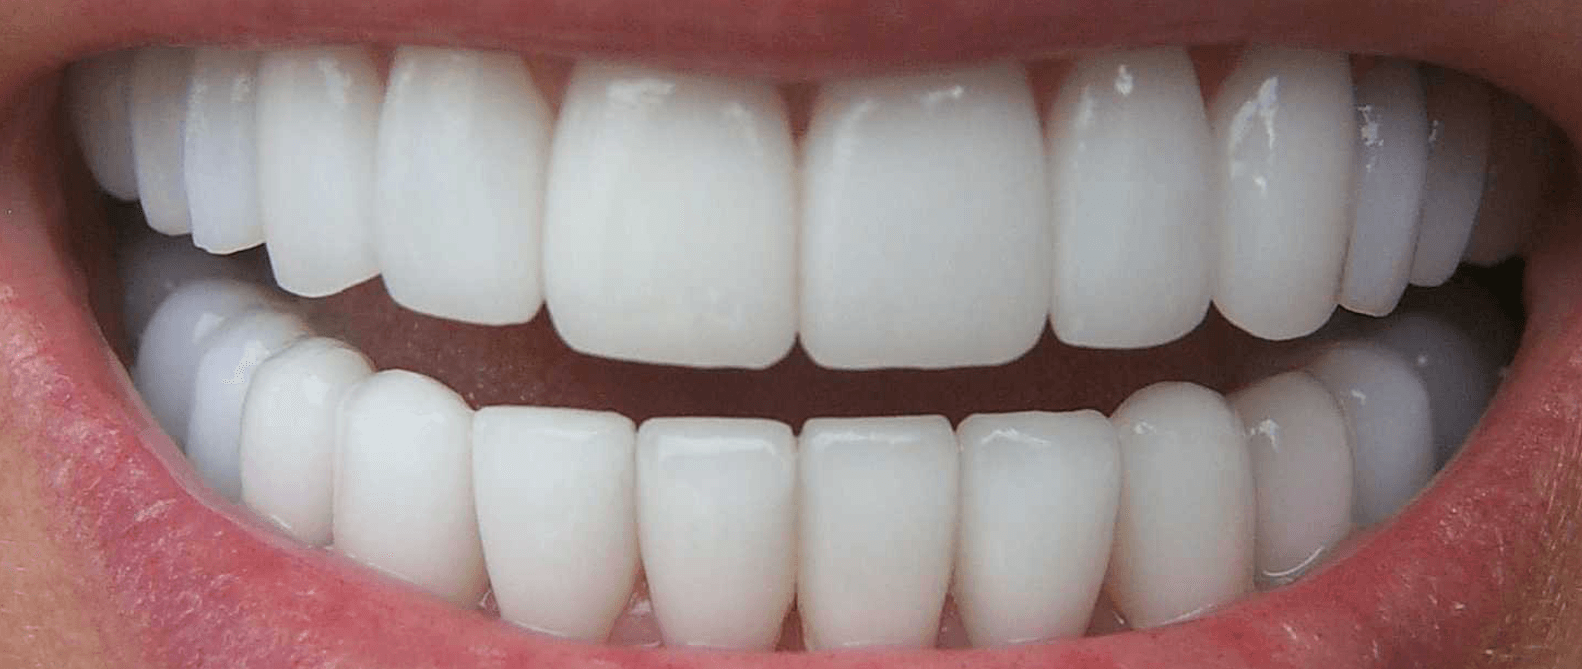 A smile after Cosmetic Bonding